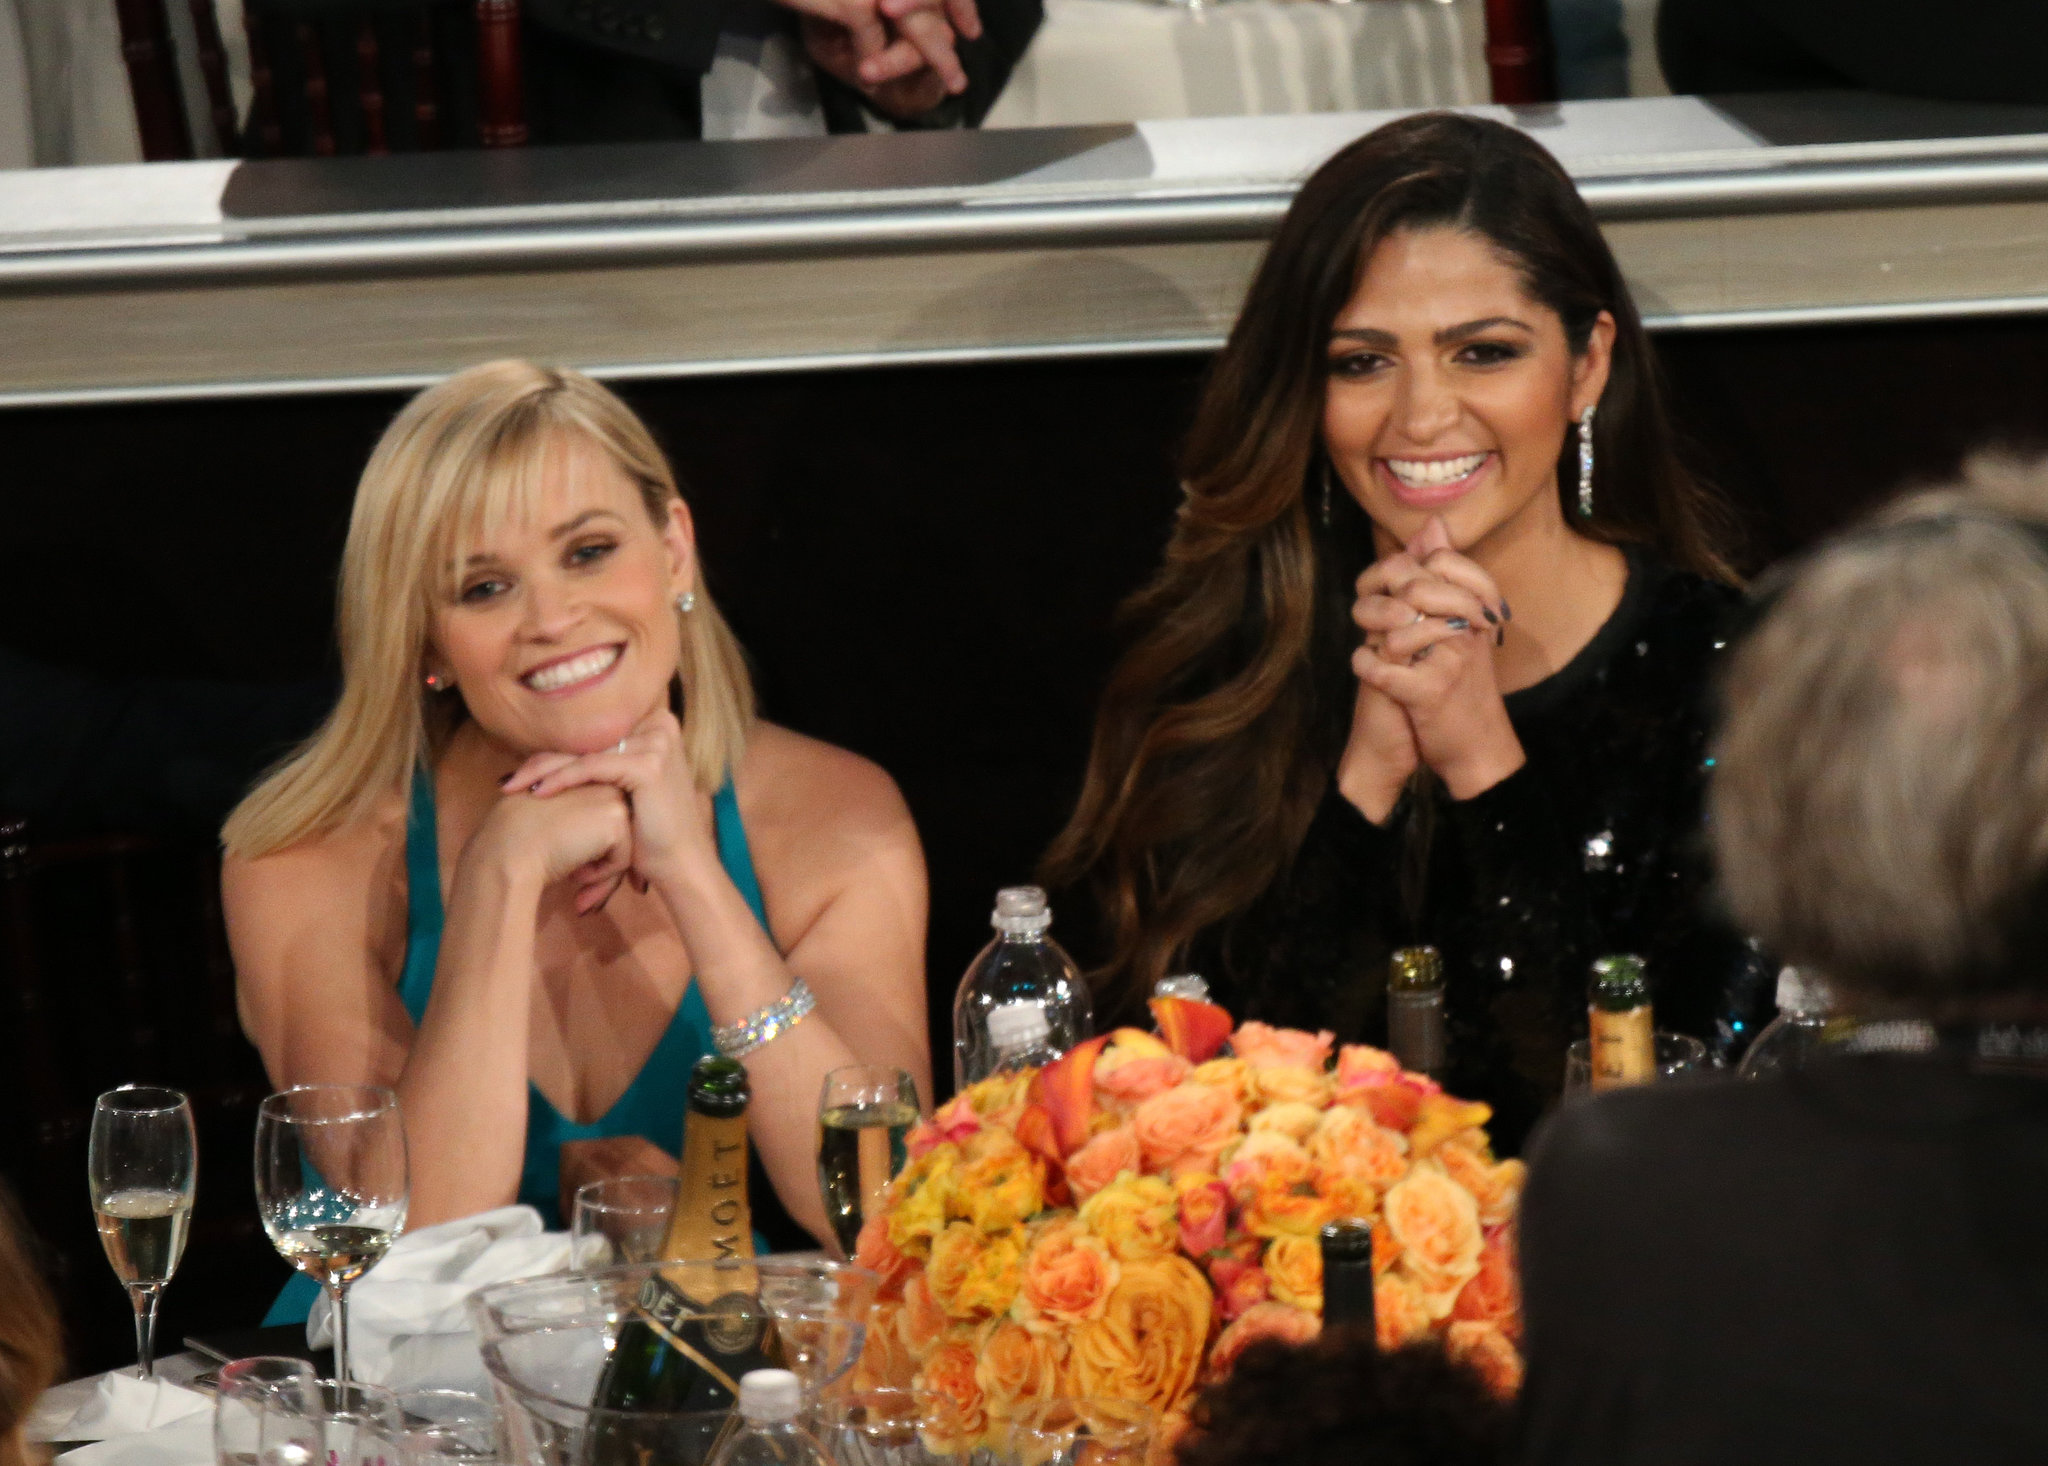 Reese Witherspoon and Camila Alves were basically picture perfect in the Golden Globes audience.